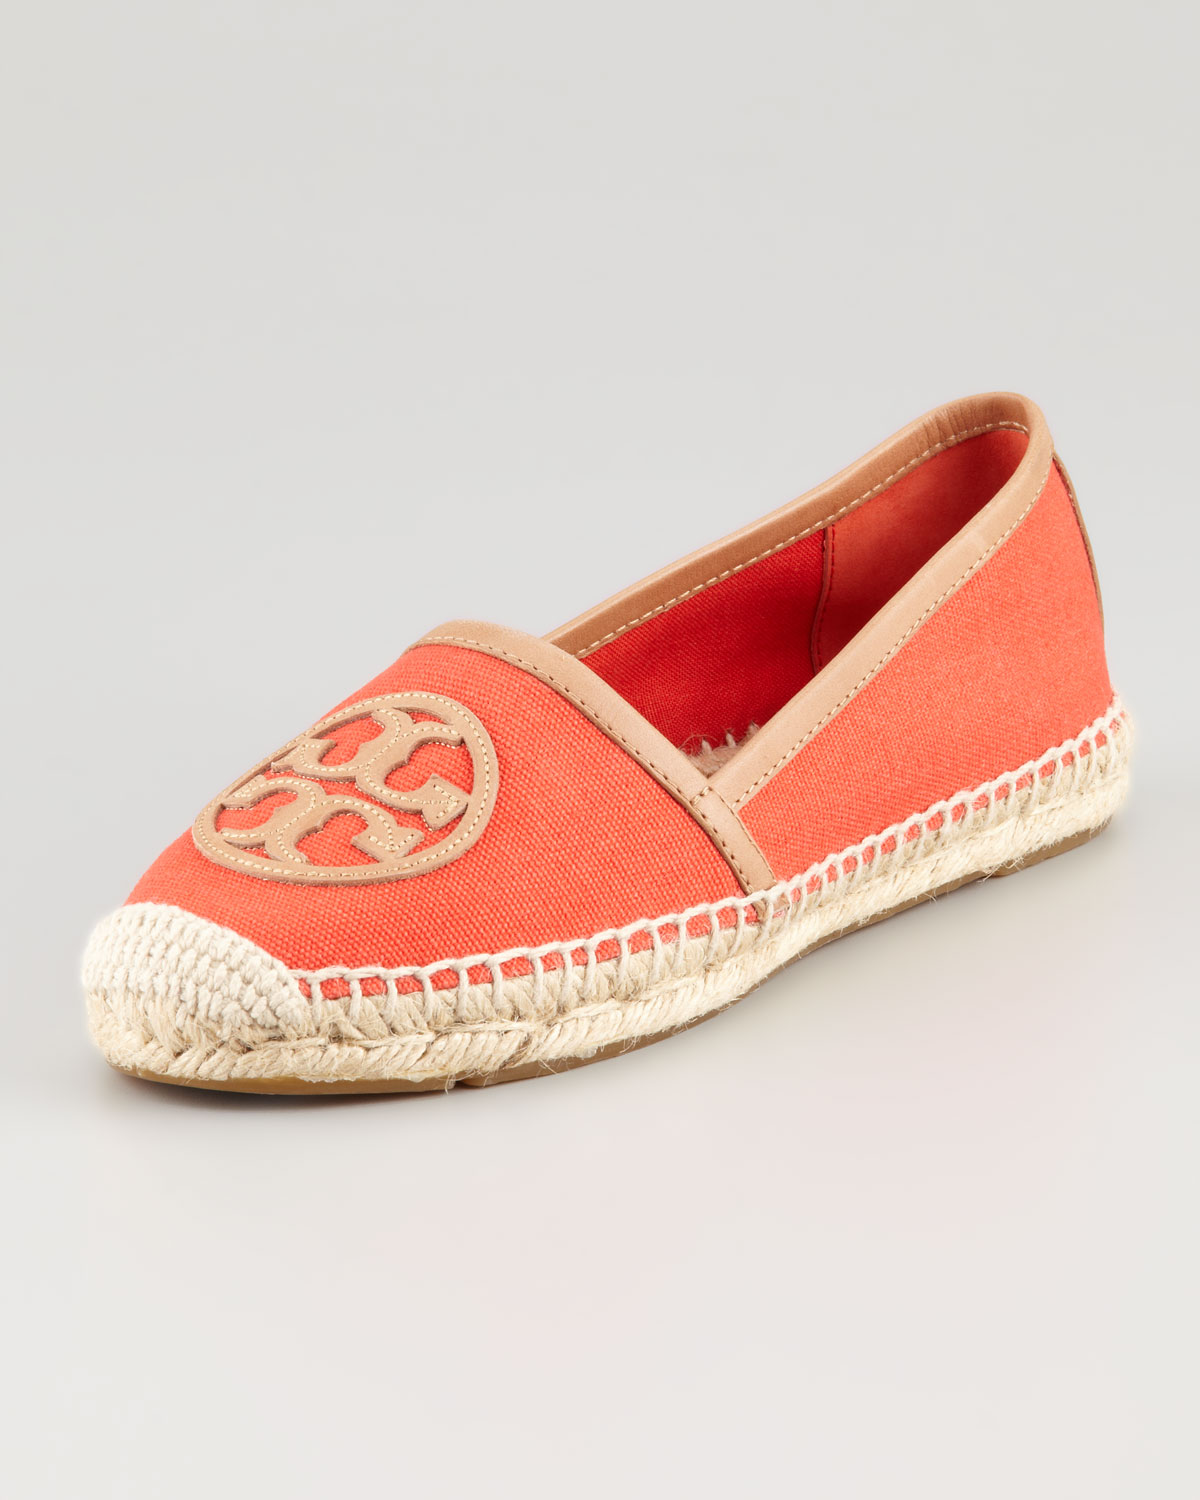 3cefecb1c63 Lyst - Tory Burch Angus Flat Espadrille Slipon in Red